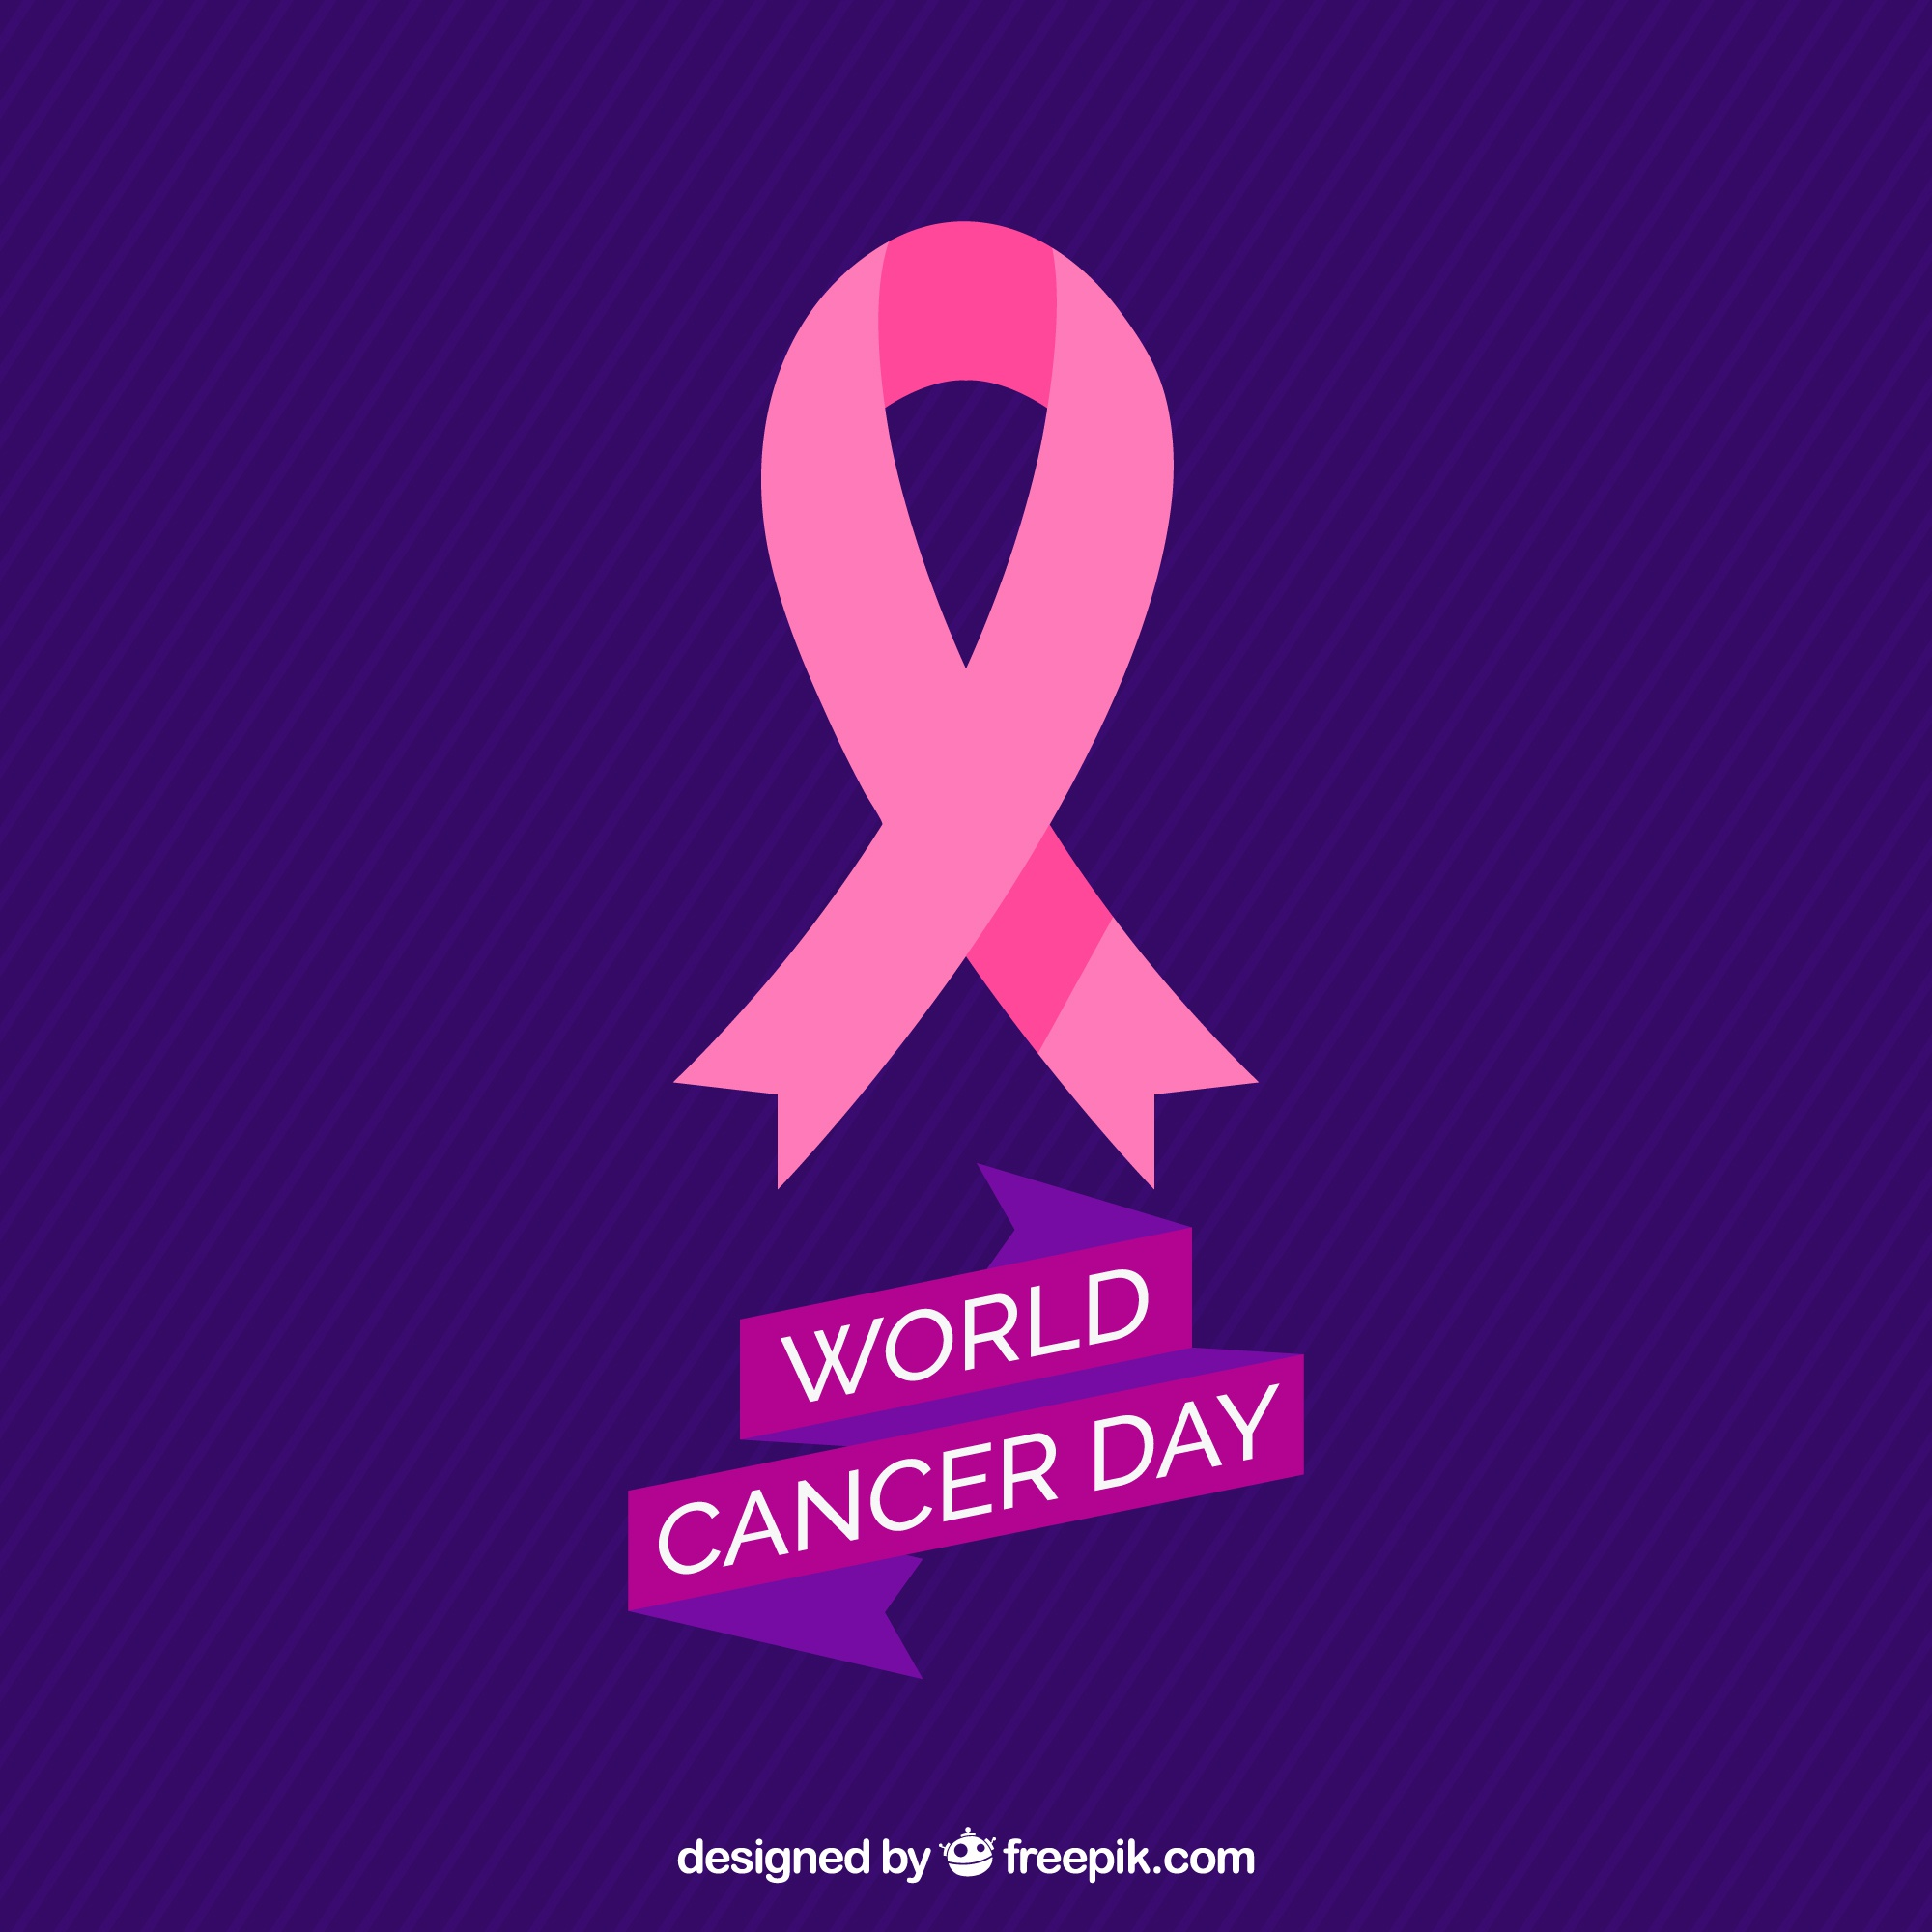 Striped background with pink ribbon for world cancer day